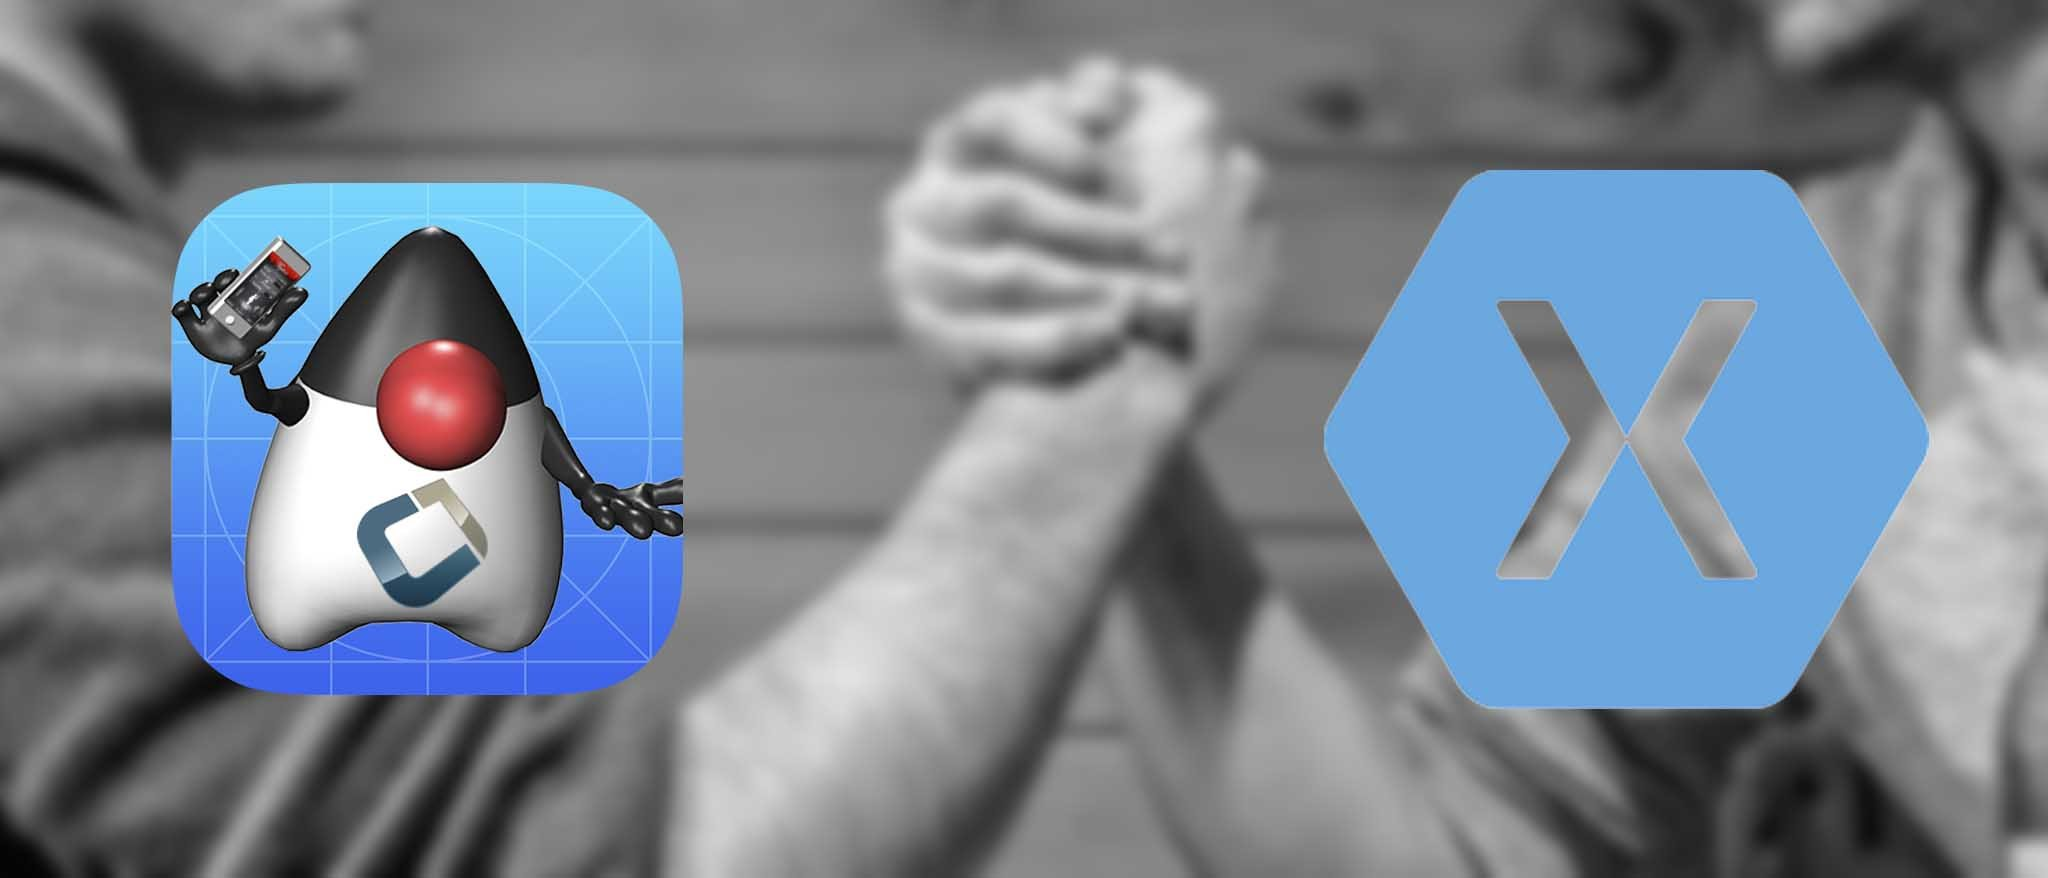 Comparing Xamarin and Codename One